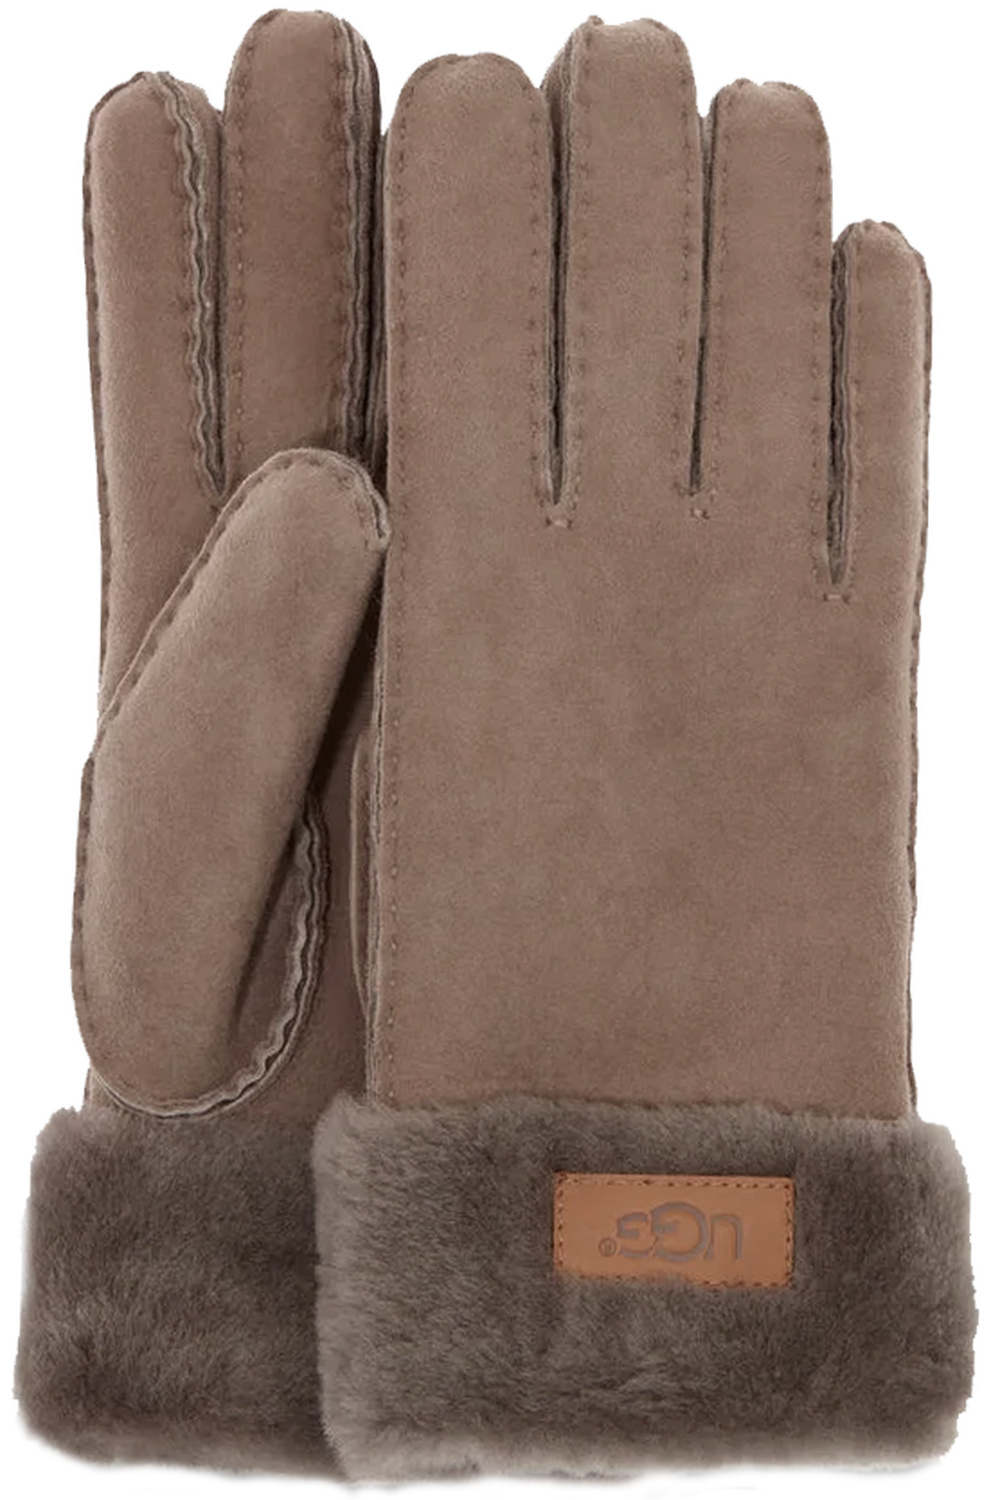 c44b61b6b89 Grey Ugg Gloves - Images Gloves and Descriptions Nightuplife.Com